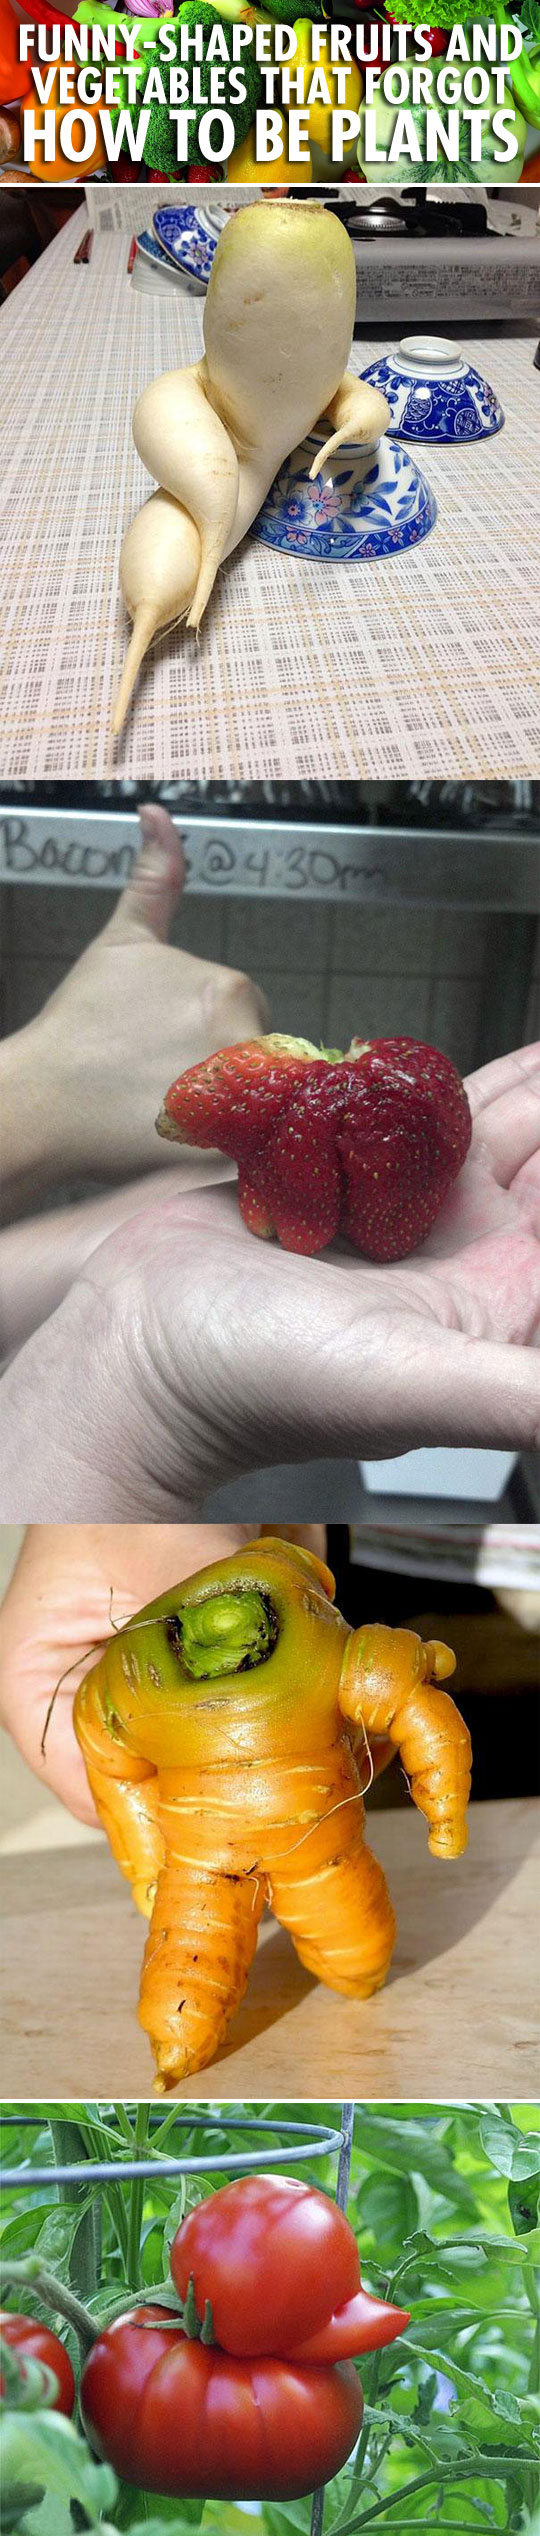 Funny-shaped fruits and vegetables that forgot how to be plants...